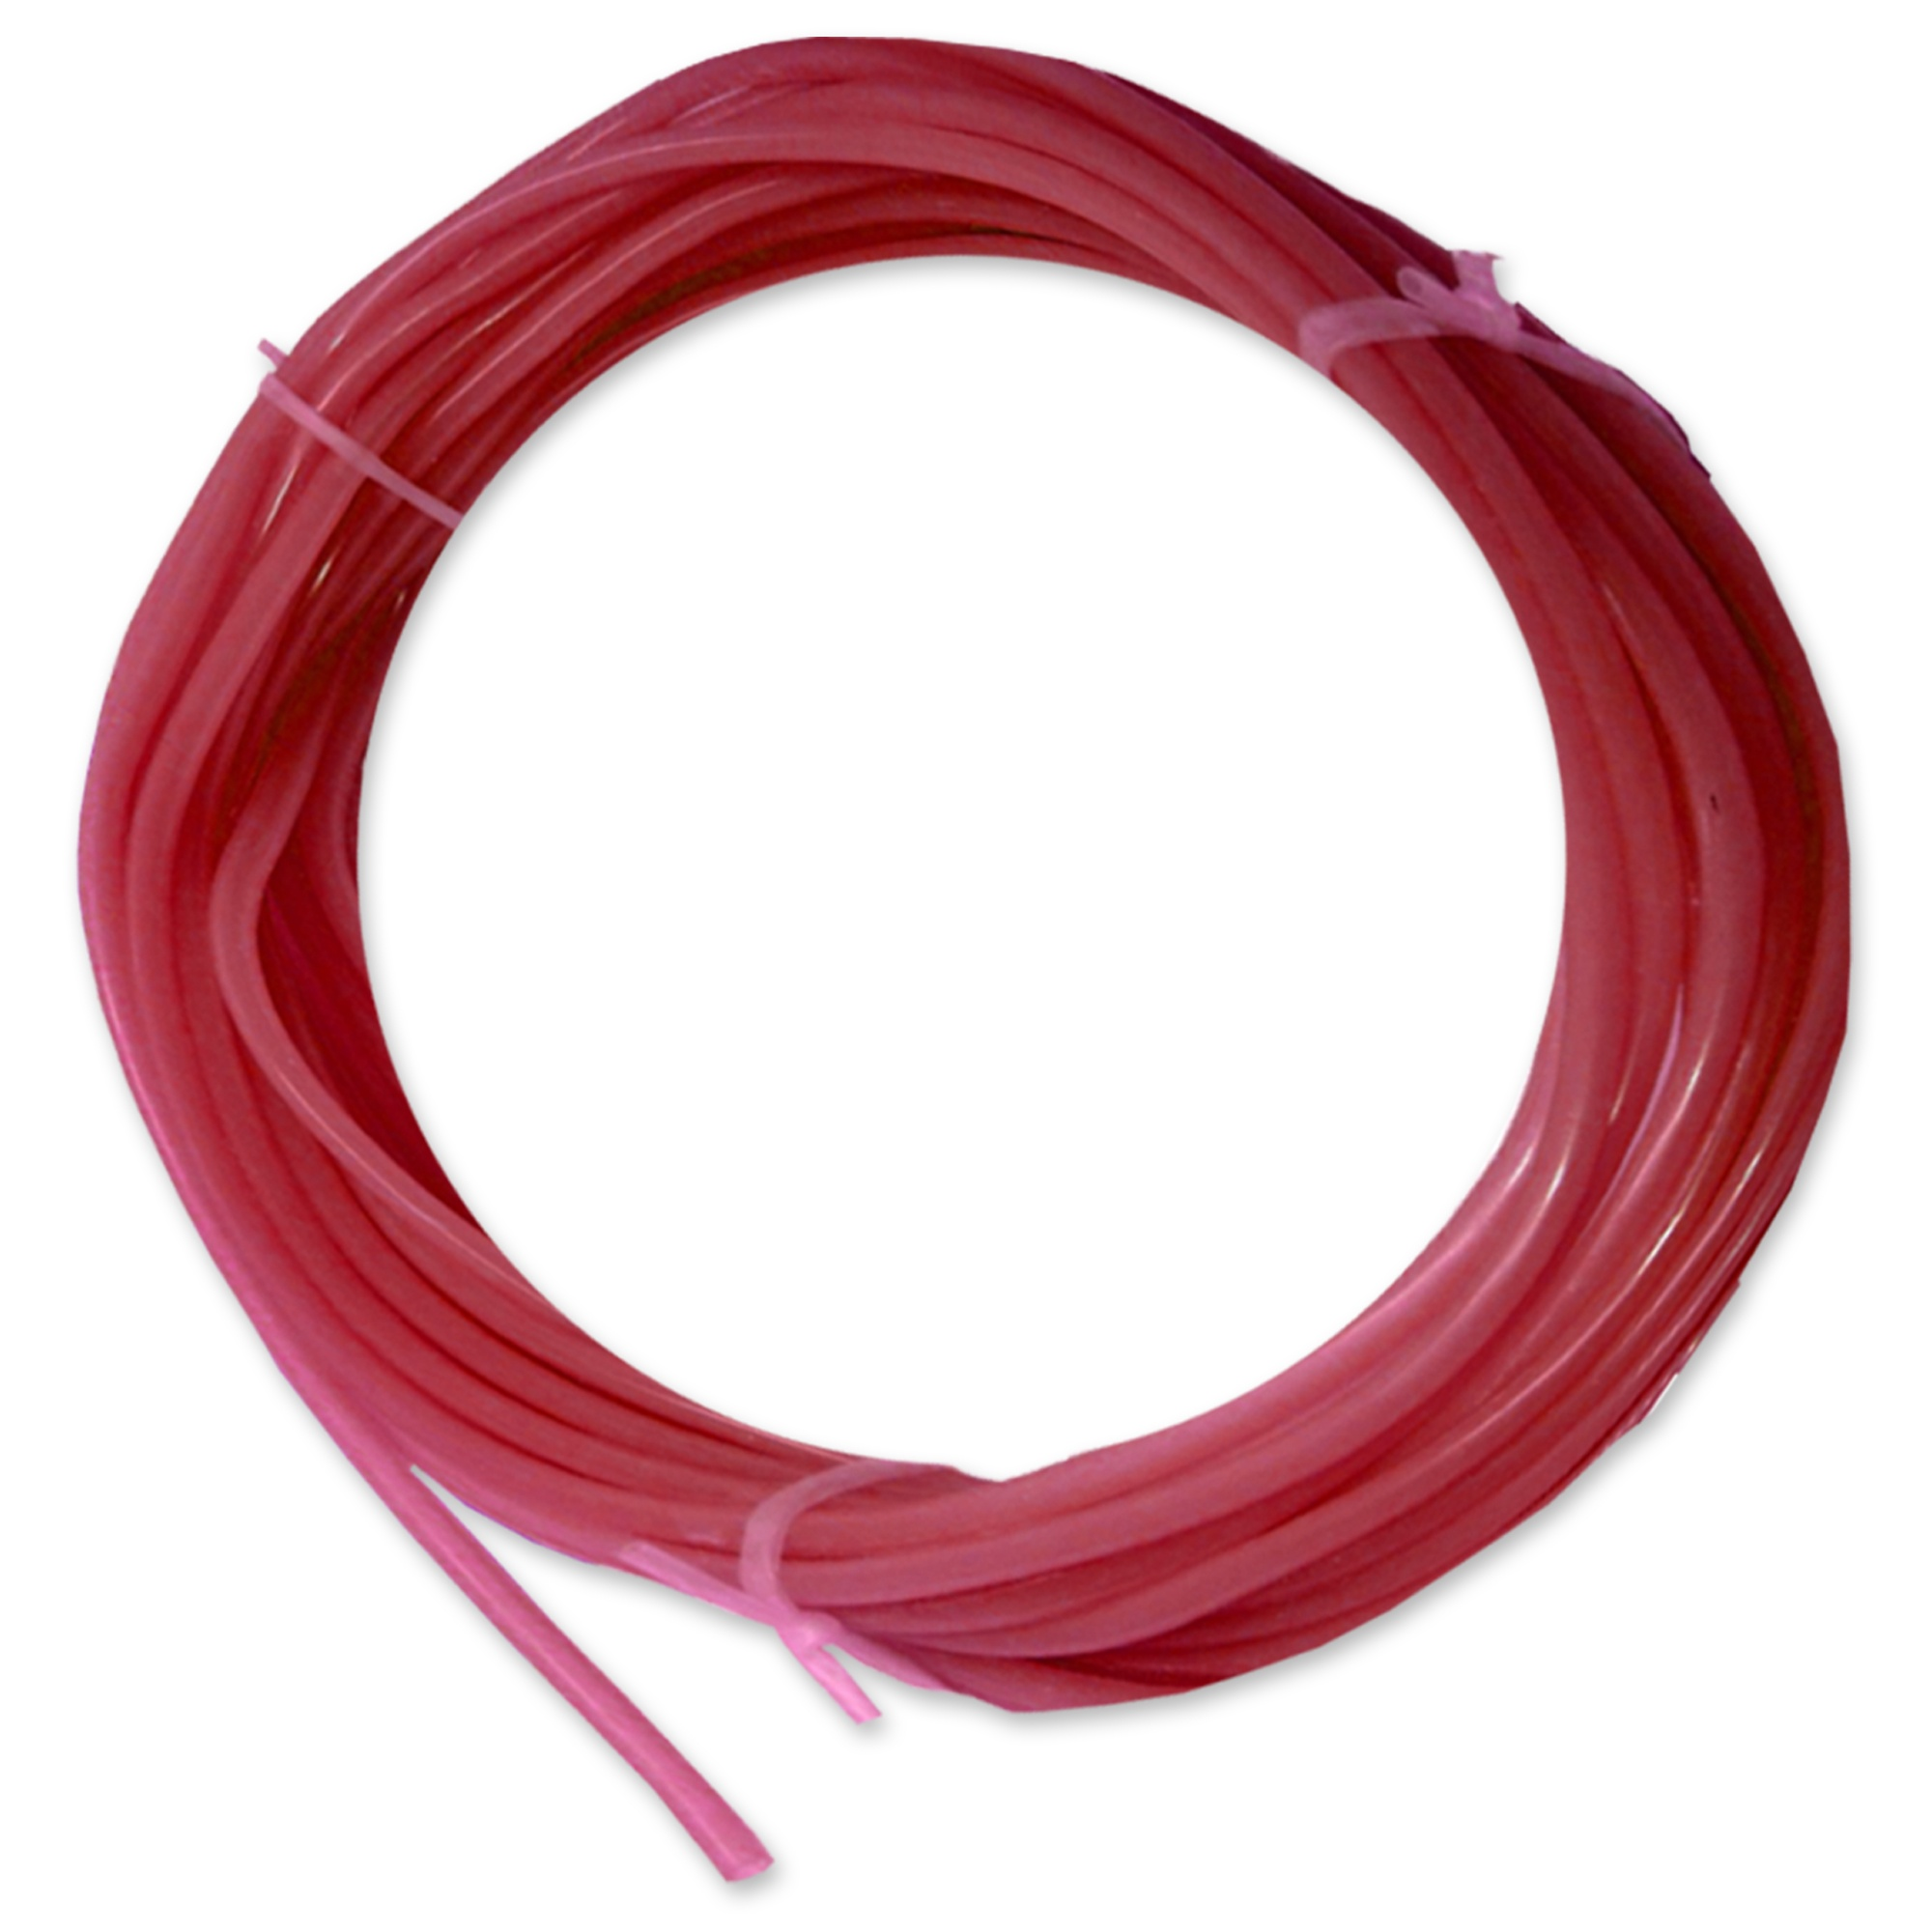 Silicone Tubes & Bands Image